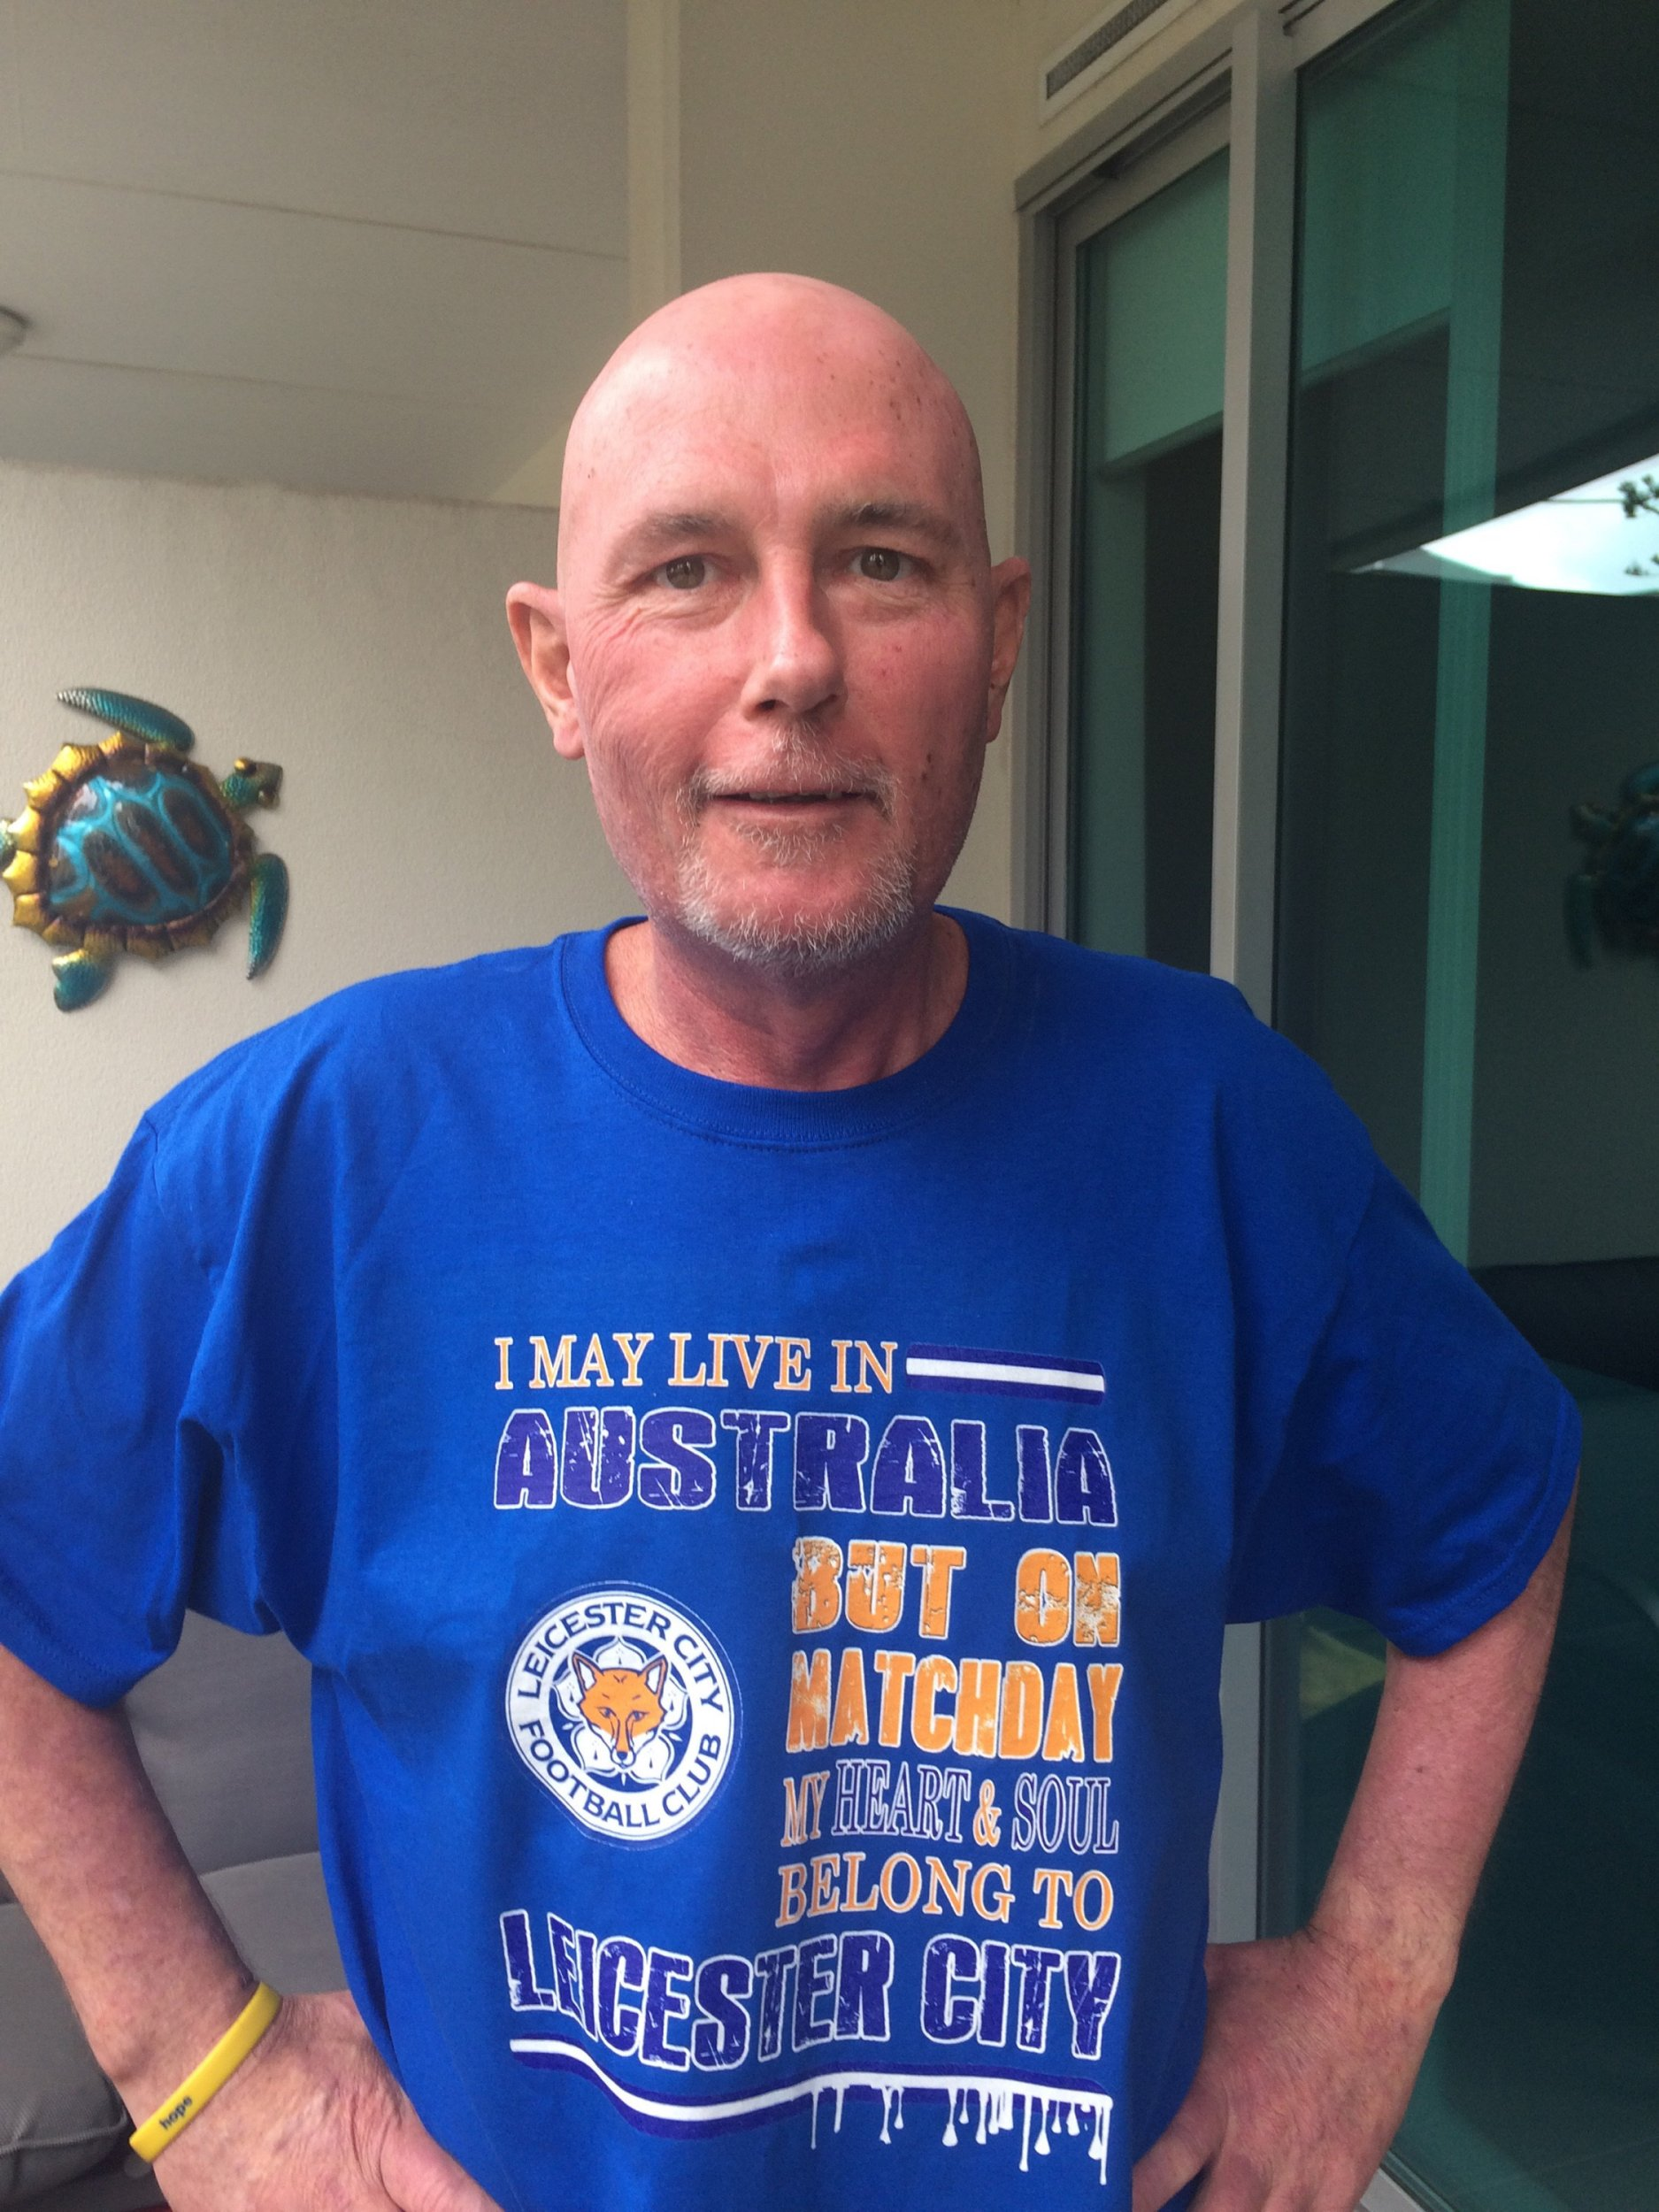 Tony Skeffington. A lifelong Leicester City fan who may have just weeks to live has been given a boost by his heroes. See NTI story NTIFAN. Tony Skeffington, 51, who was born and raised in Adelaide, South Australia, was given four weeks to live in March last year after being diagnosed with cancer. But like the team he has followed all his life he defied the odds and is still battling on and hopes to see the club win the Premier League title. This week he was given a major boost when the club sent him an LCFC pennant signed by first team players, complete with a photograph of his favourite player, Andy King, holding it.